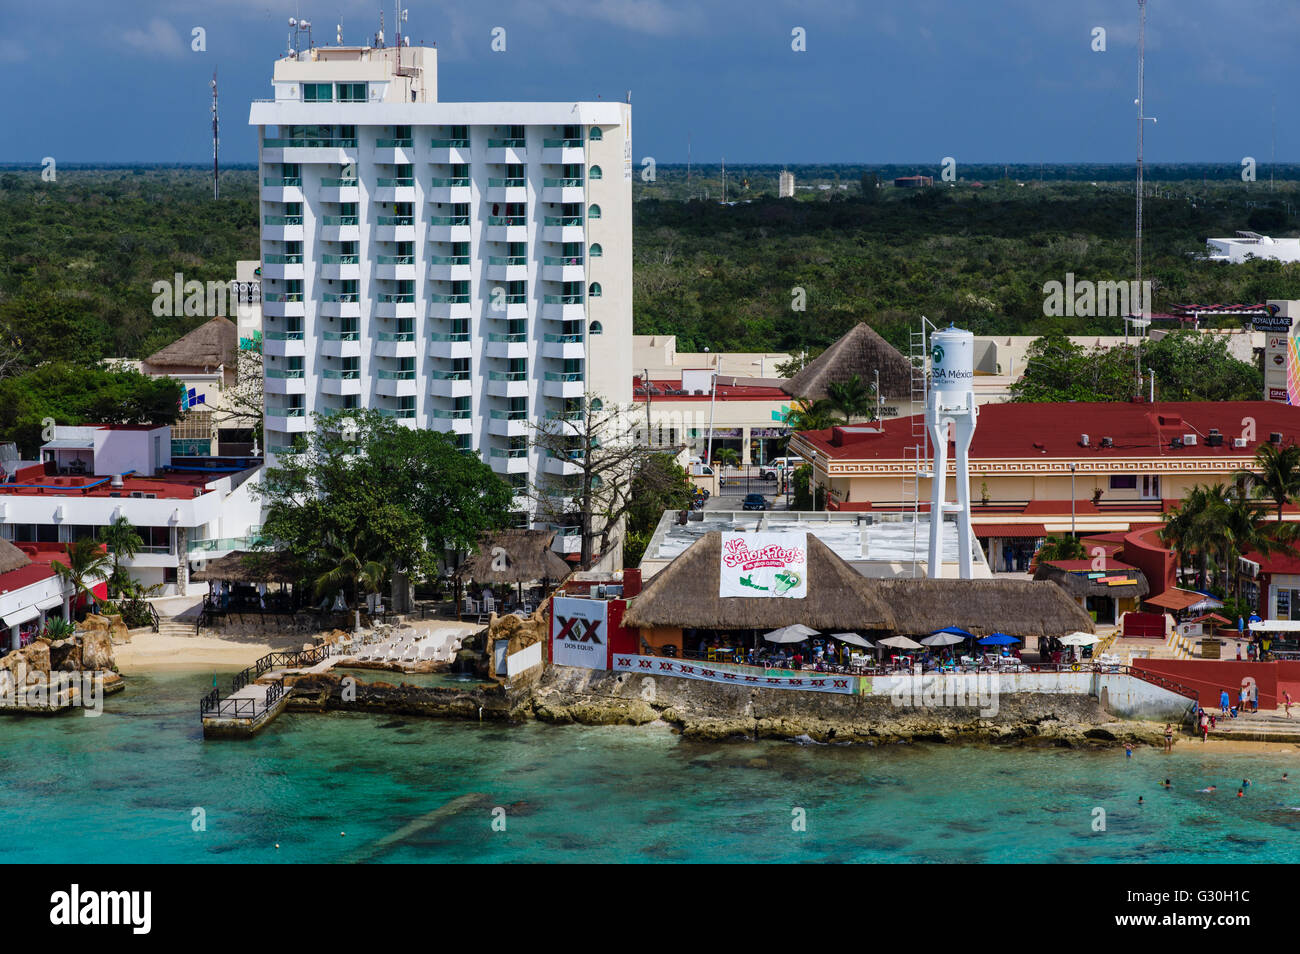 Senor Frog's bar on the beach at Cozumel. Cozumel, Mexico - Stock Image